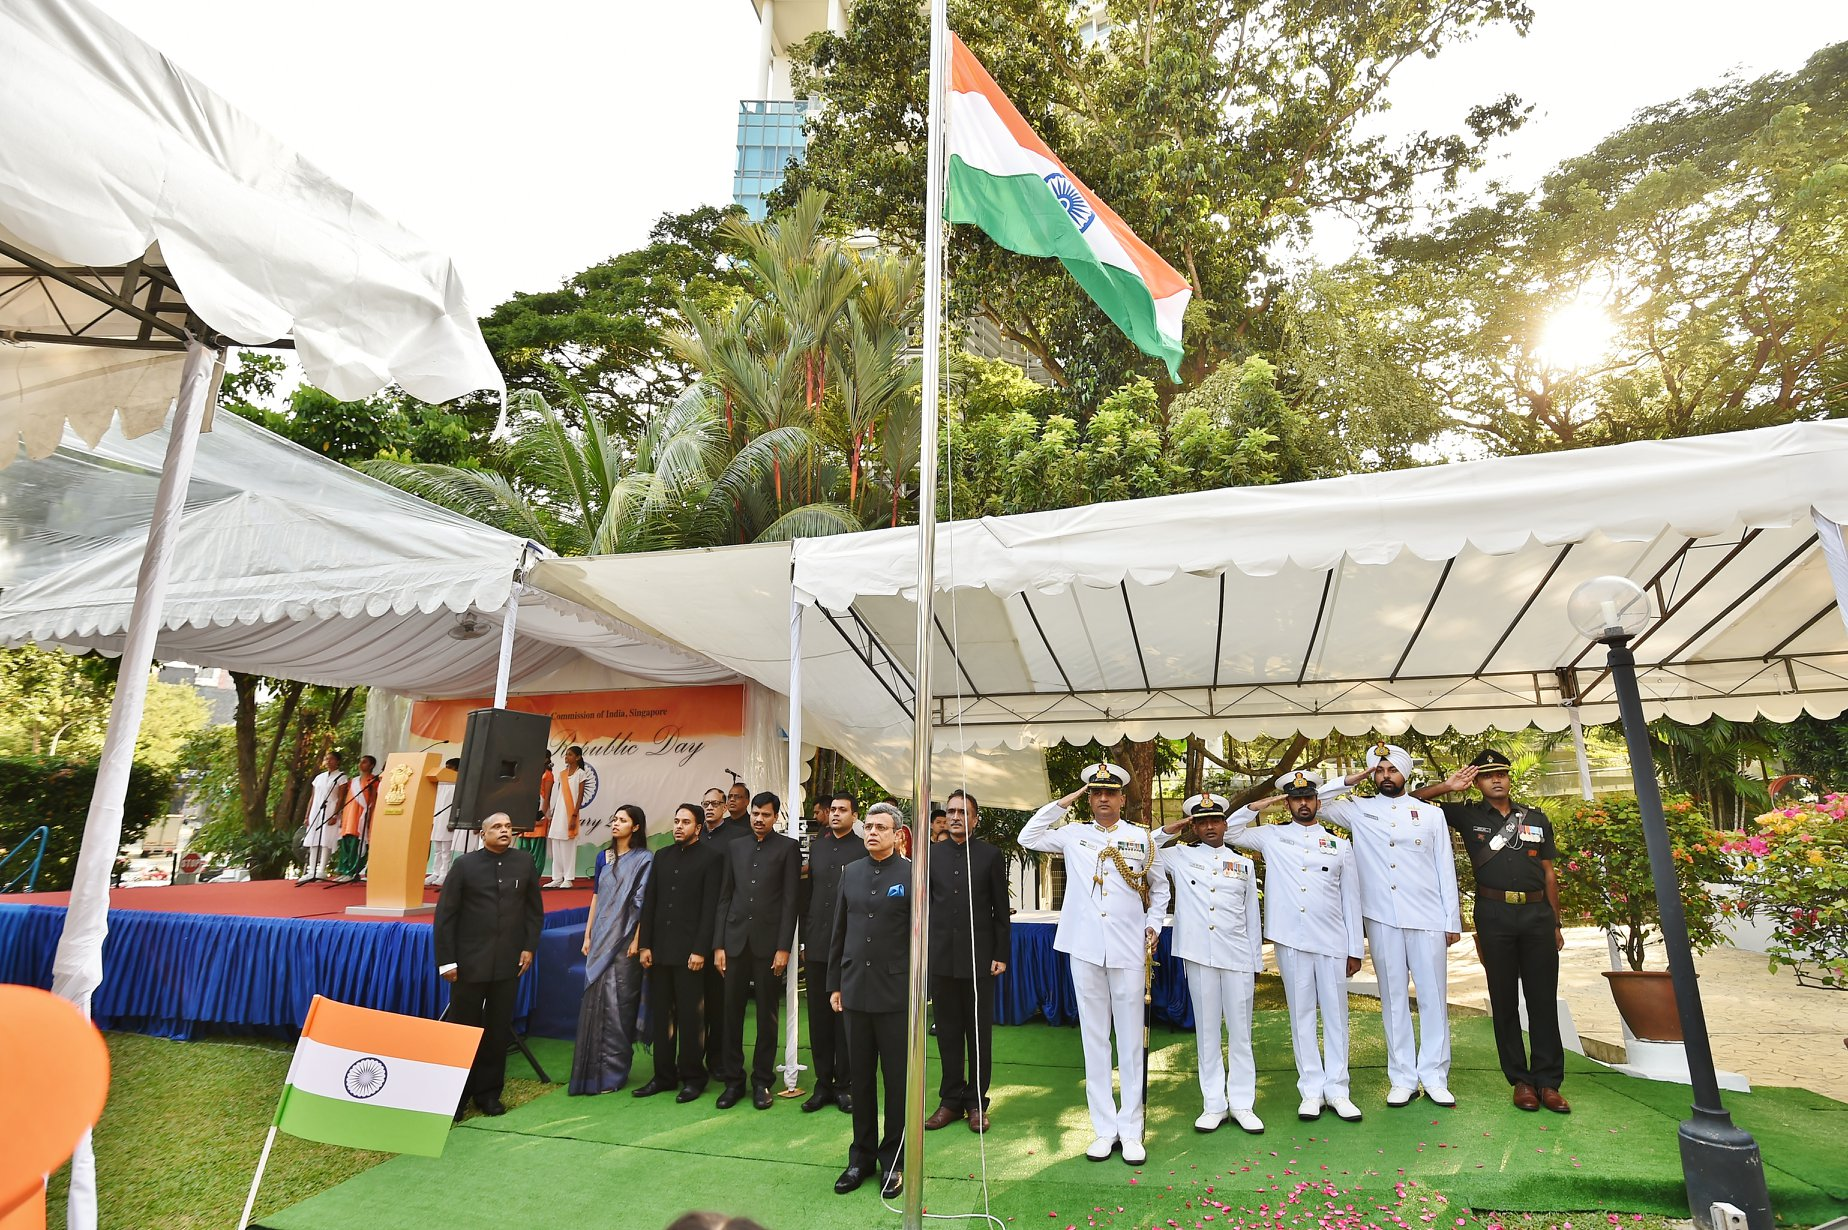 Republic Day flag hoisting on the grounds of High Commission of India on Republic Day. Photo courtesy: High Commission of India Singapore